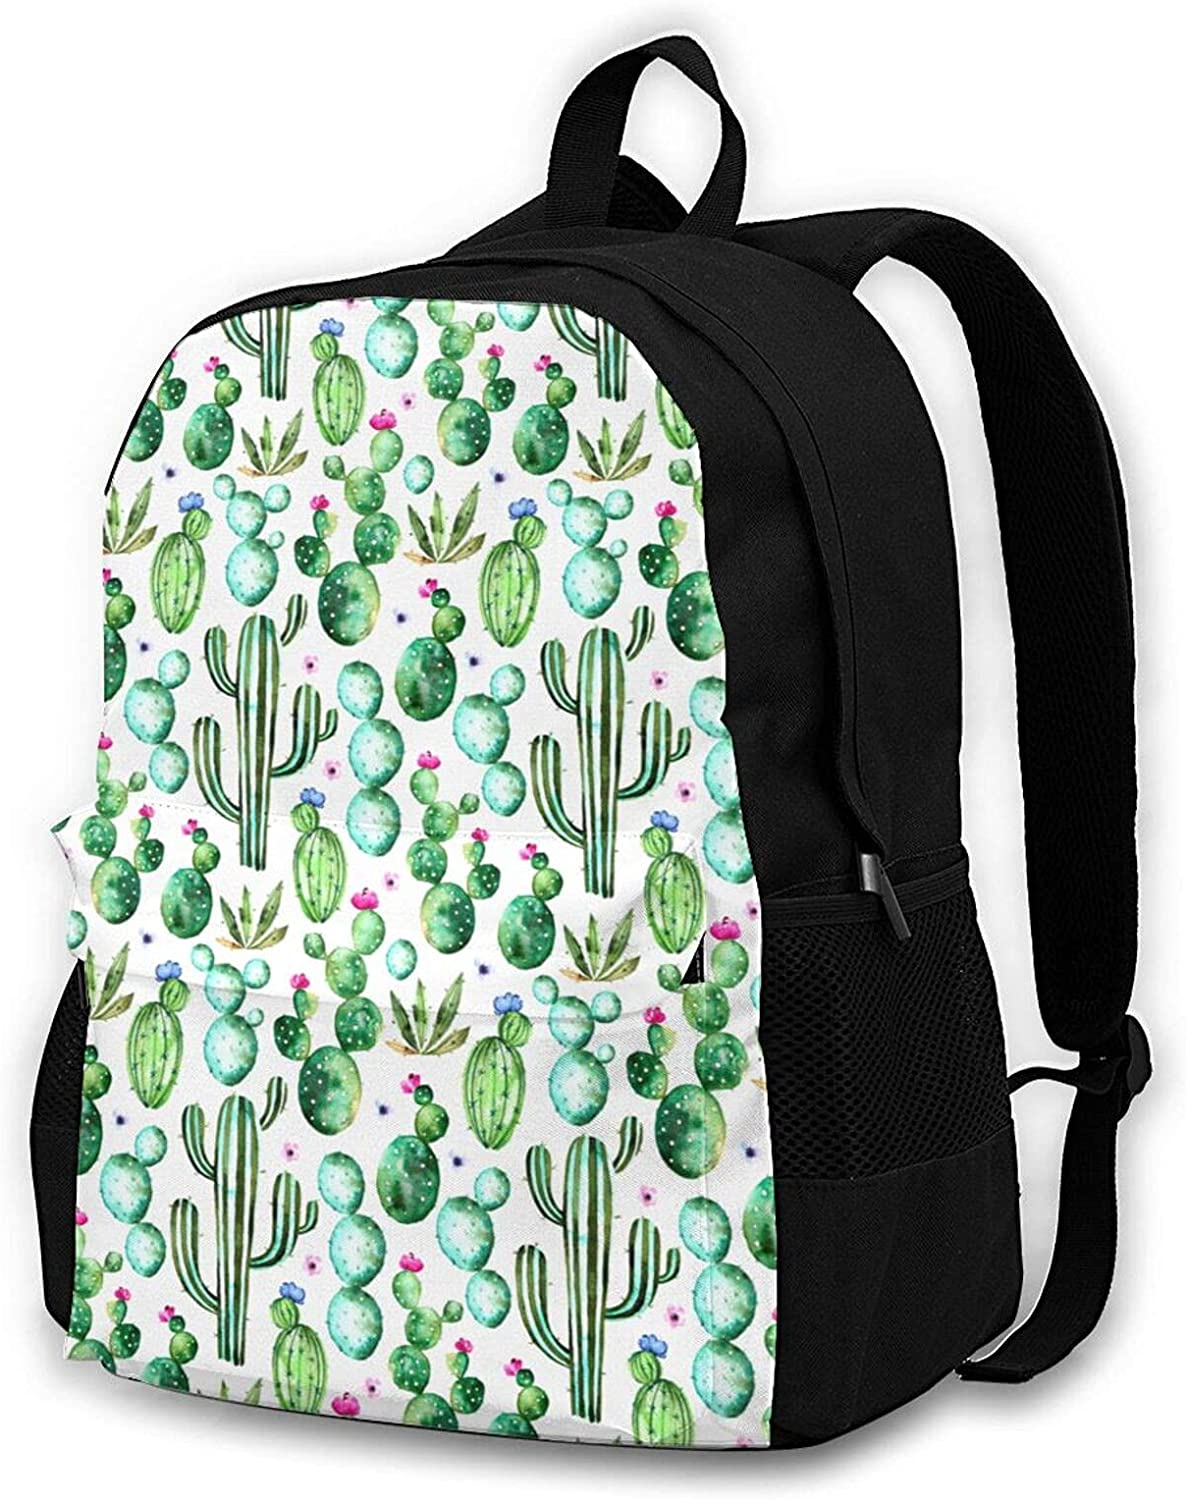 Cactus Travel Laptop Backpack for Men Women College School Computer Bookbag with Business Anti Theft Water Resistant